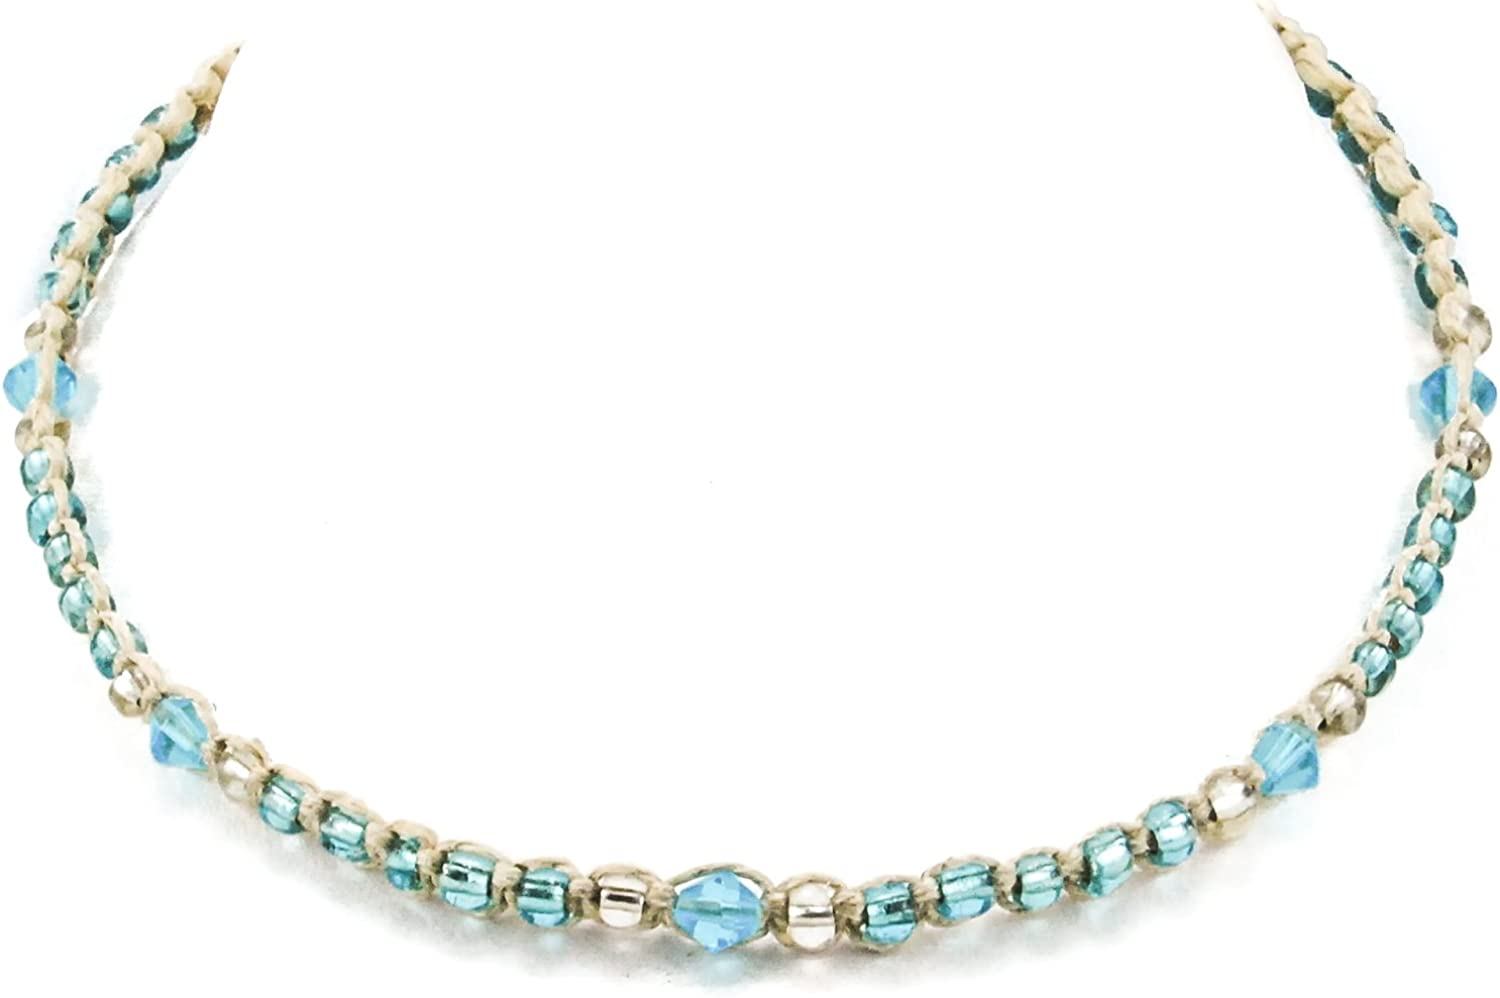 Hemp Choker Necklace with Turquoise Blue Glass Beads